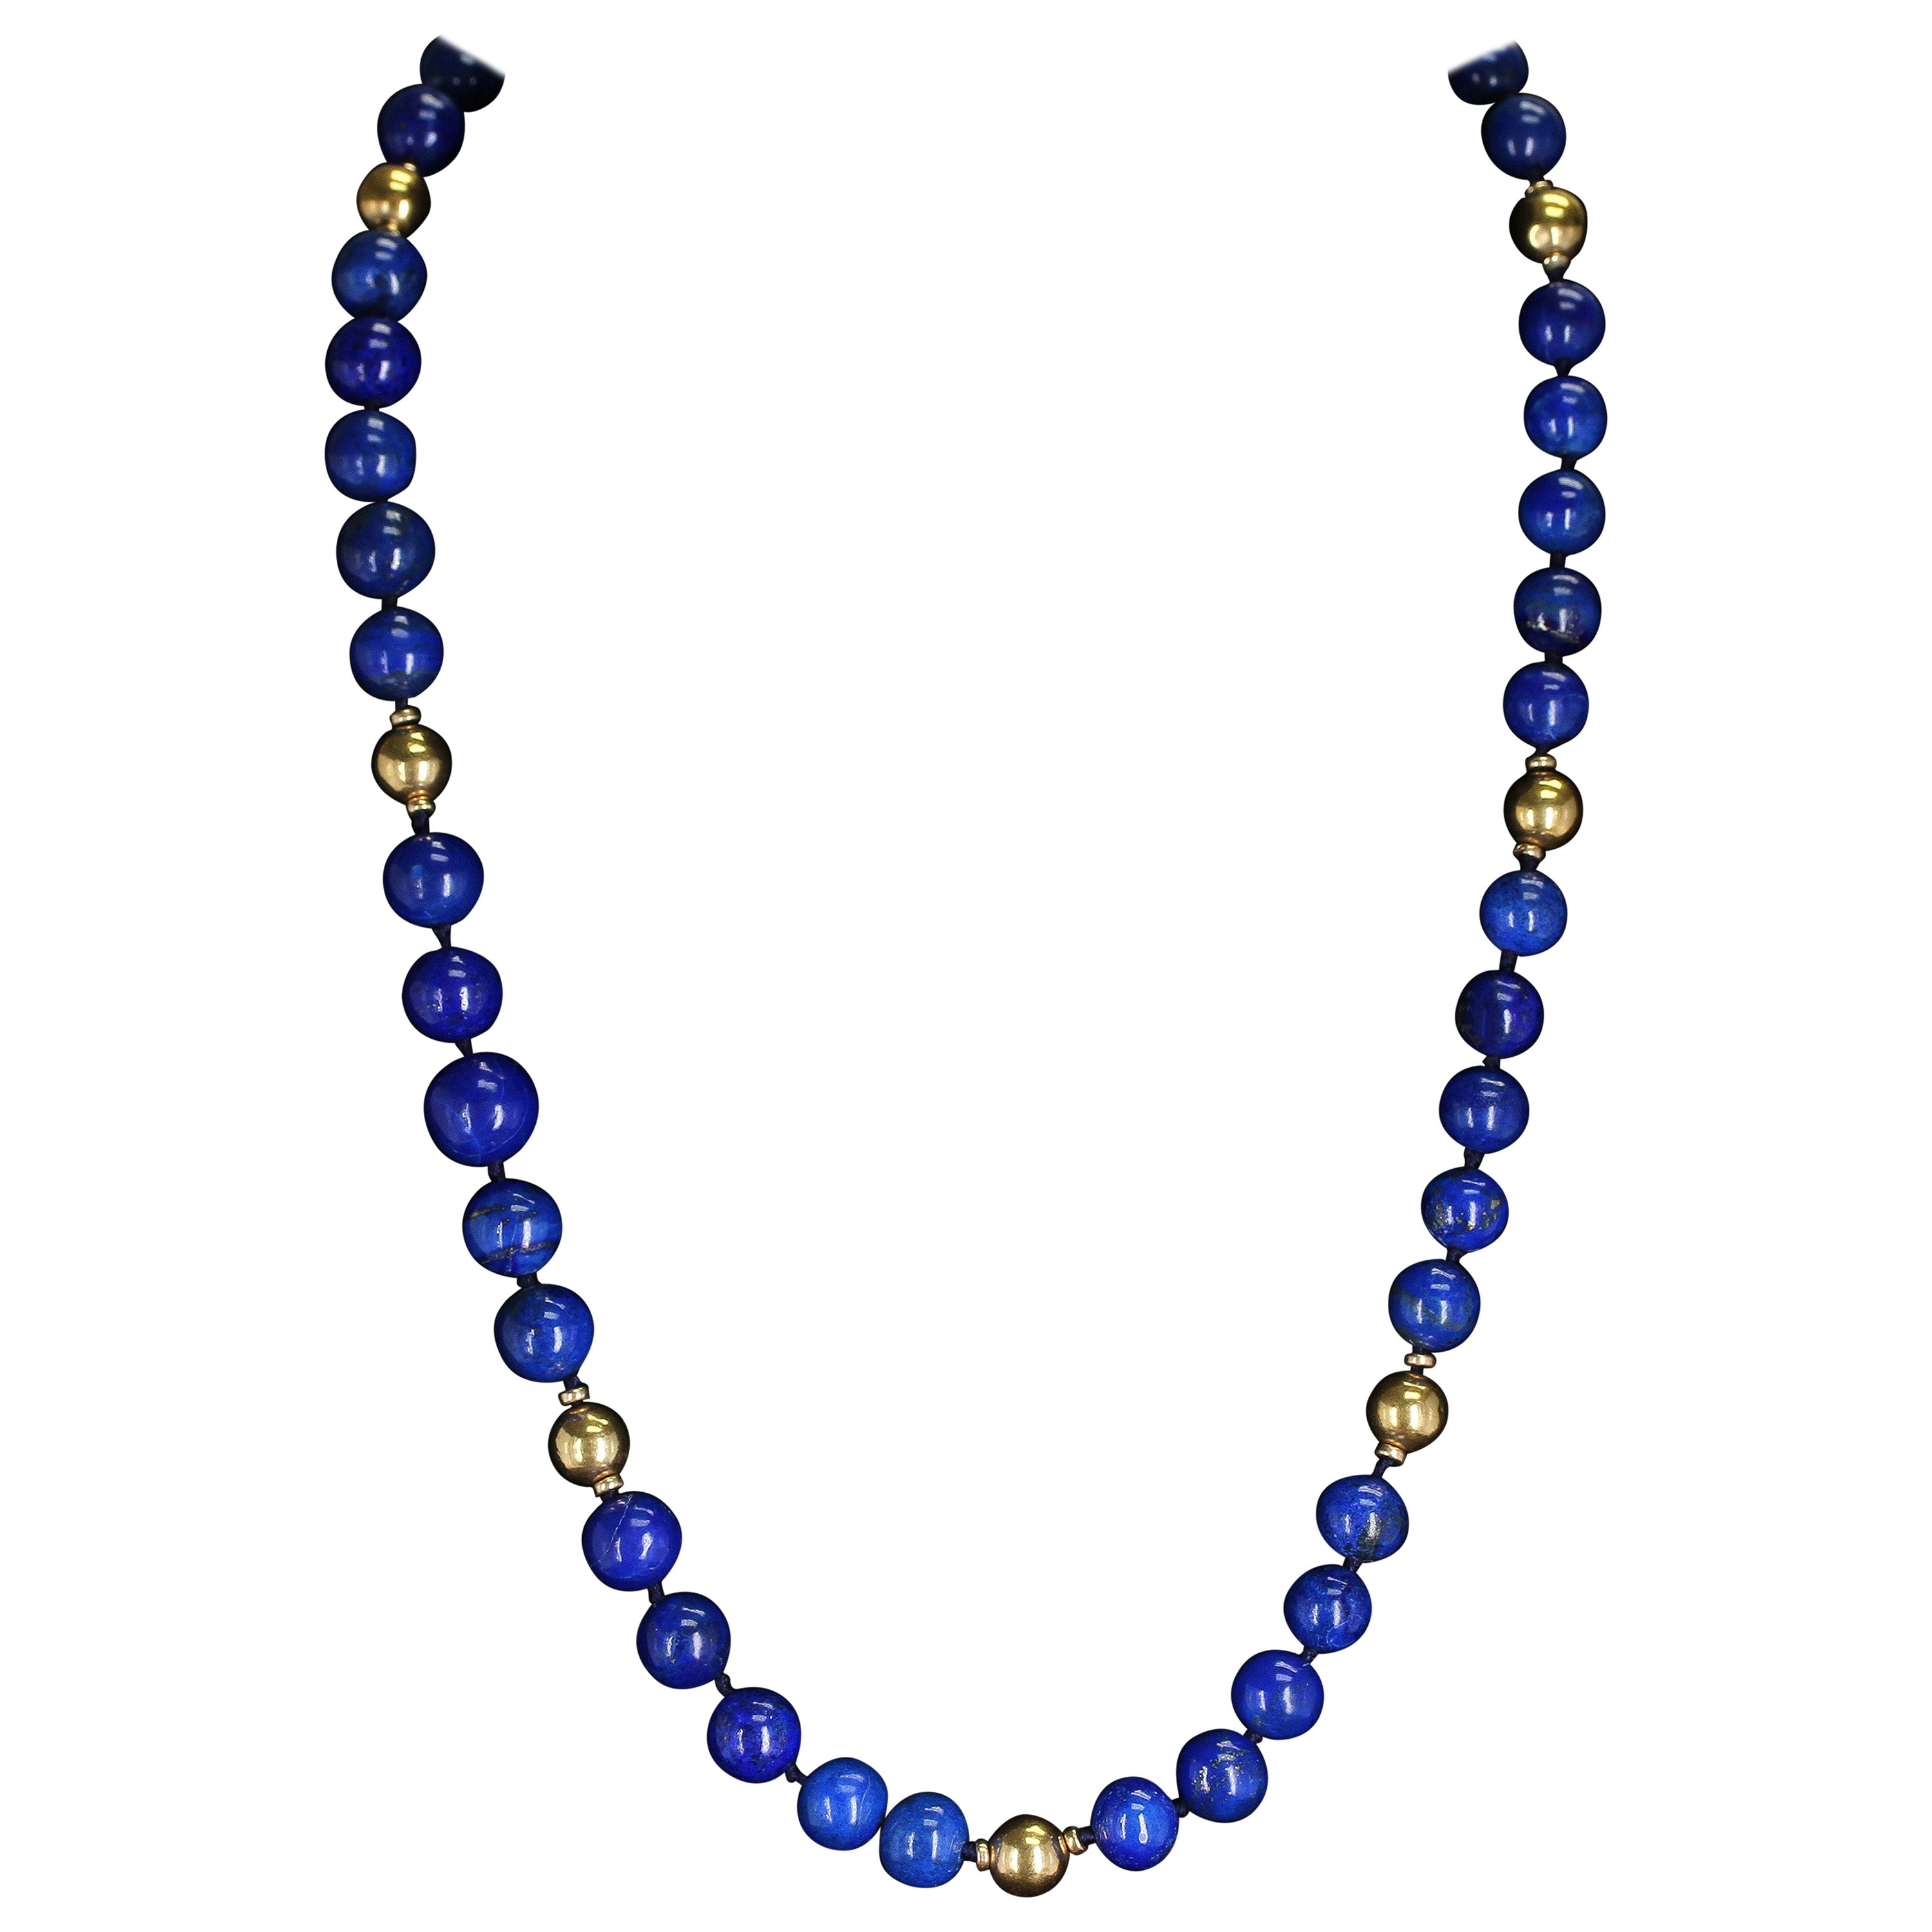 Large and Round Lapis Lazuli Beads and Gold Beads Necklace